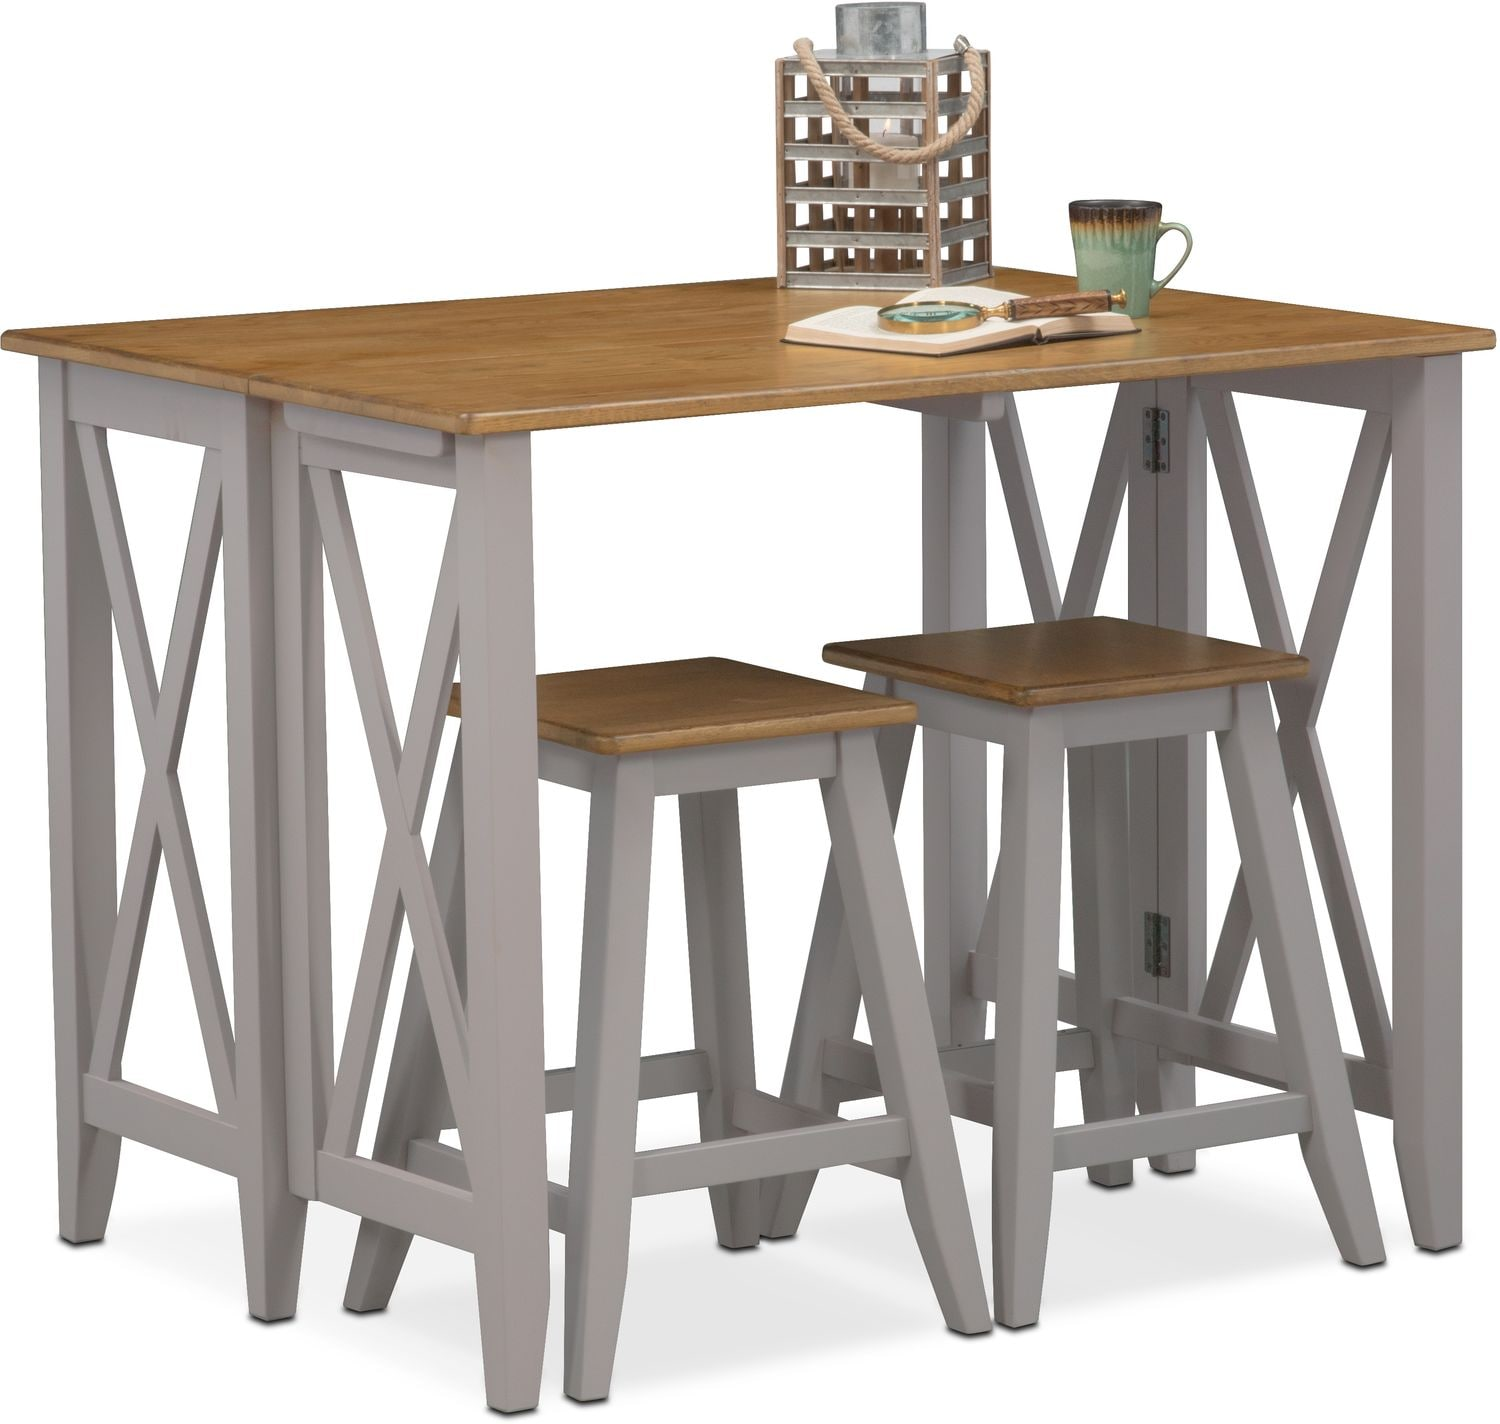 room tables breakfast high bar divine sets top inventiveness pub dining most kitchen and table chairs